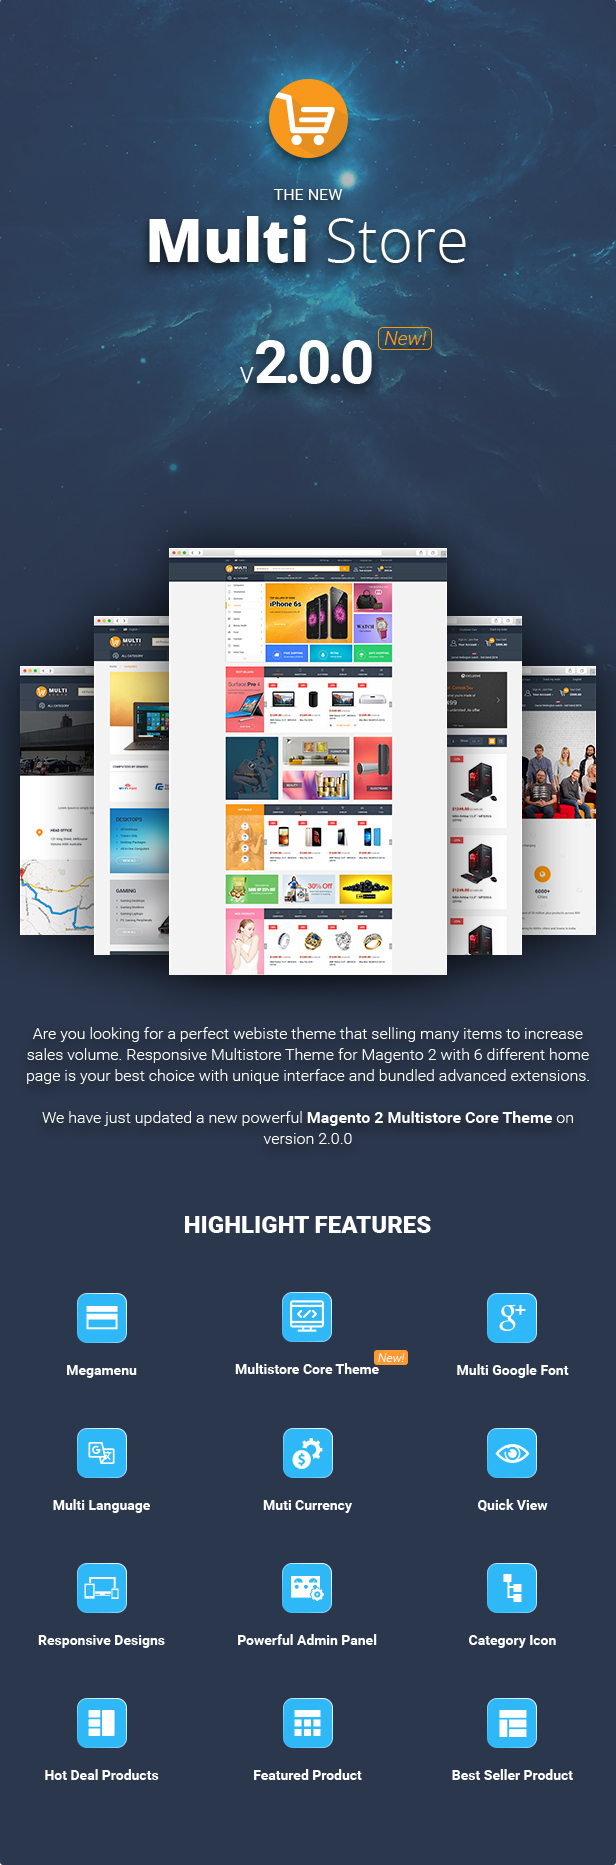 Reviews for MultiStores - Magento 2 Megashop Theme support Multiple Stores